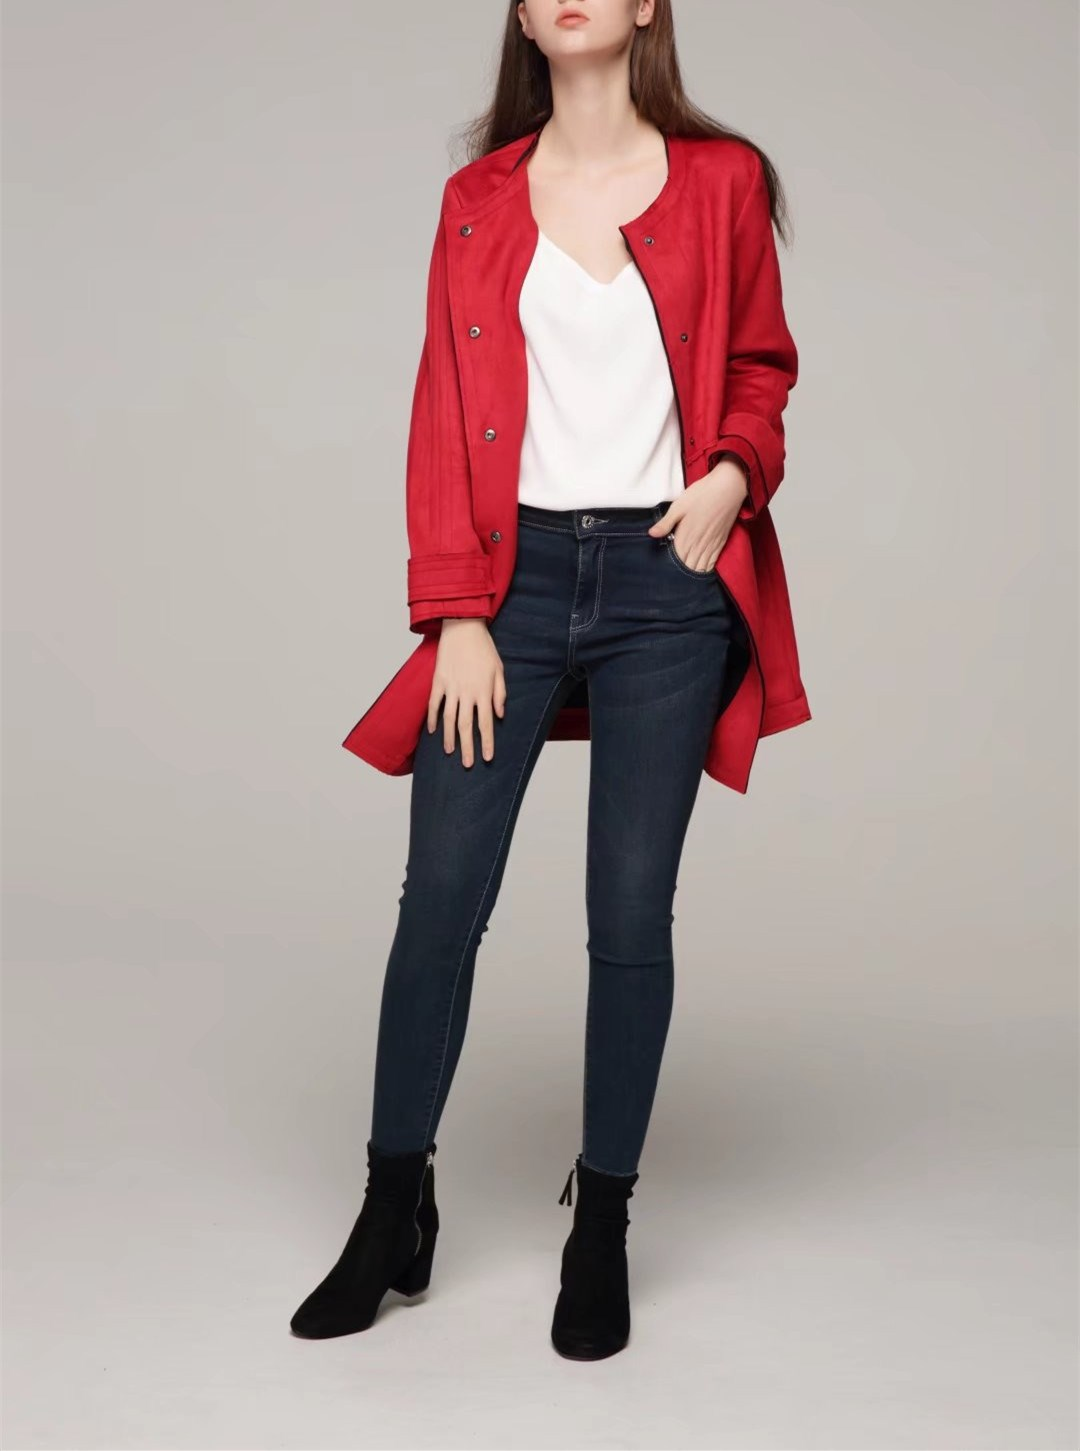 2018 New Women Autumn Winter Bodycon Jackets Elegant Patchwork Faux   Leather   Coat Lady Red   Suede   Matte Long Outwear